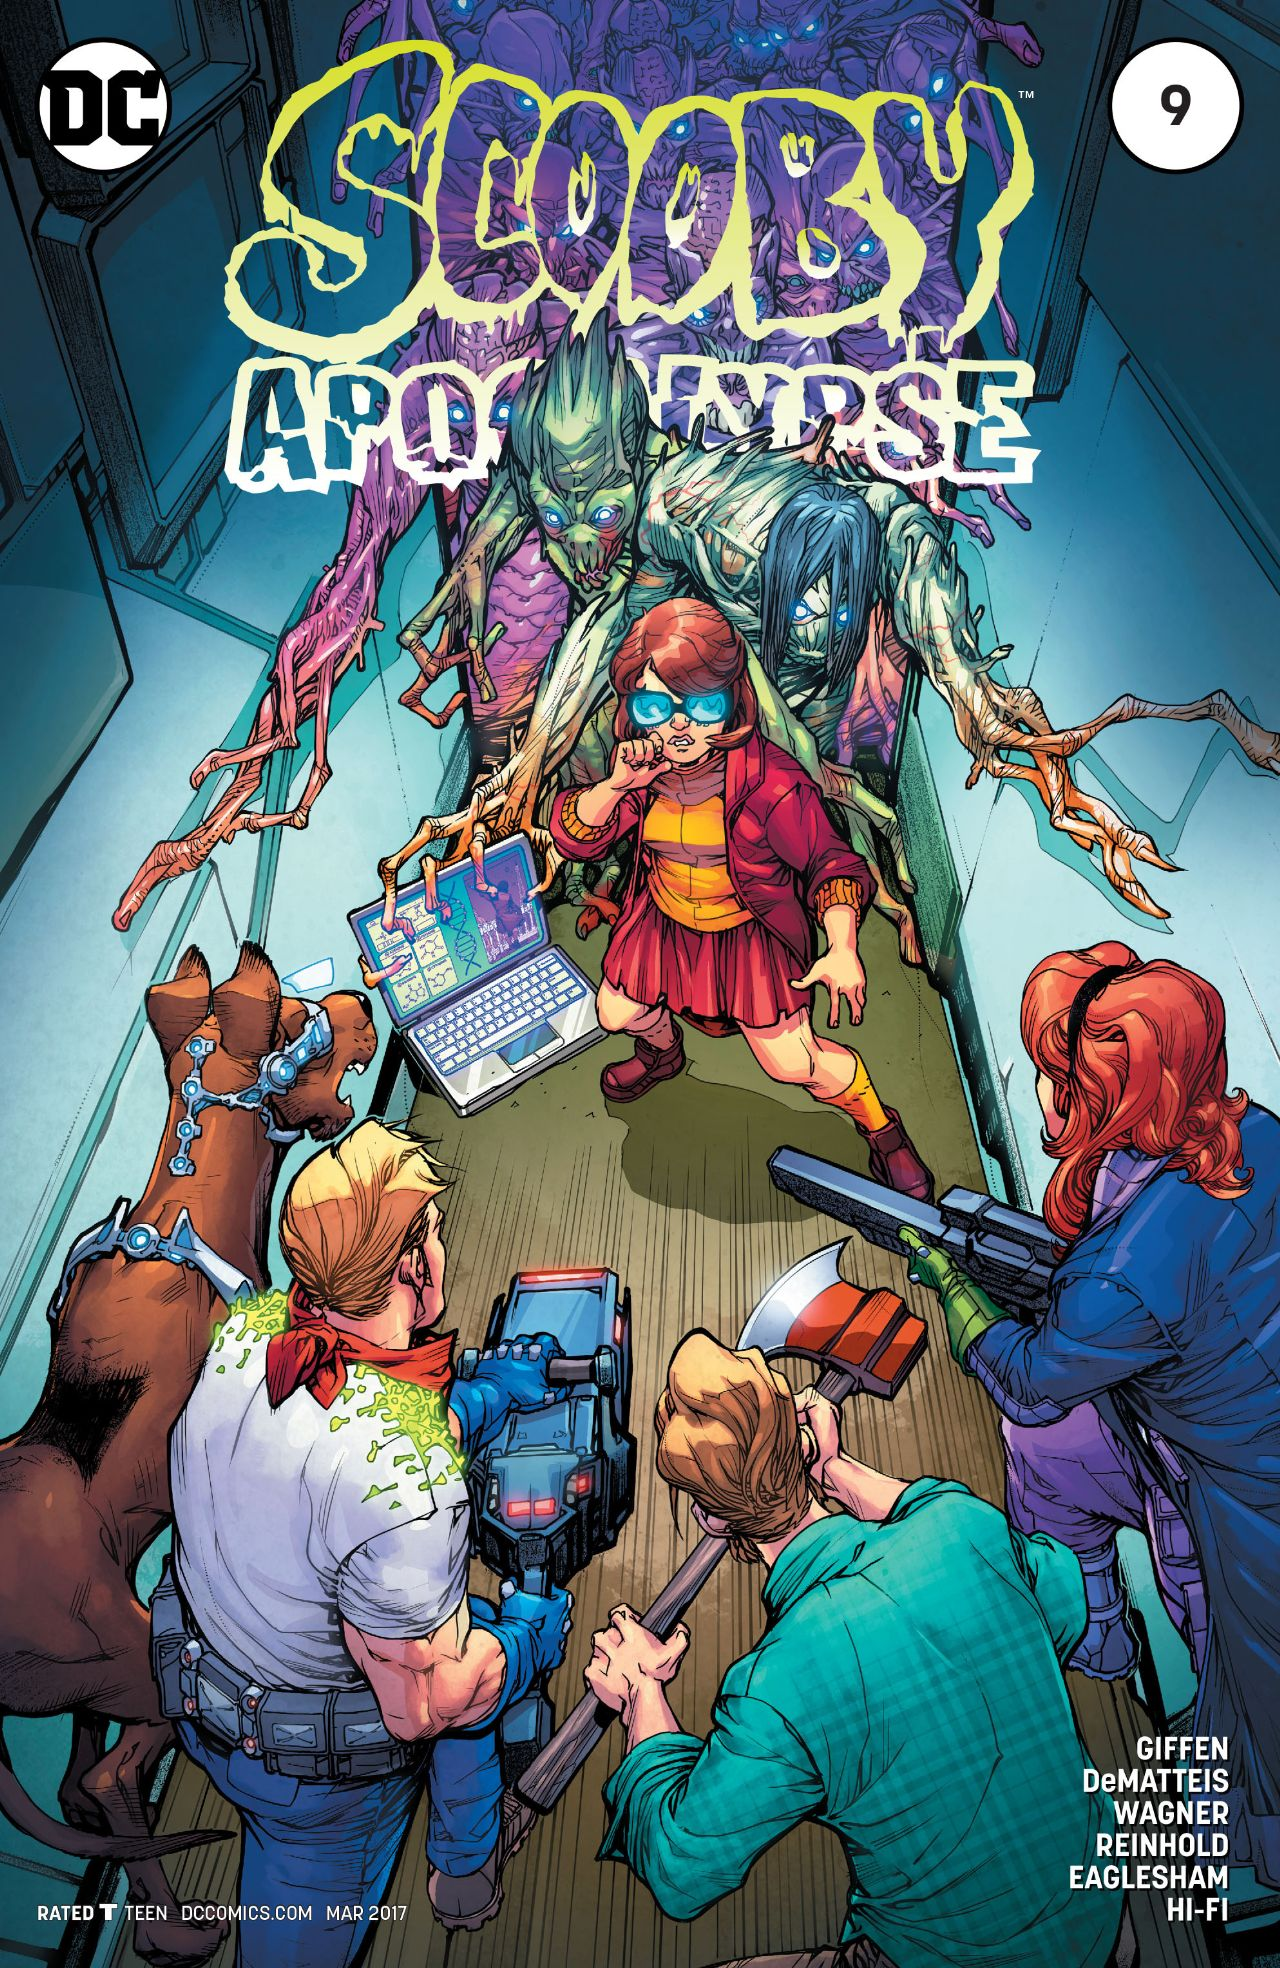 Scooby Apocalypse Vol 1 9